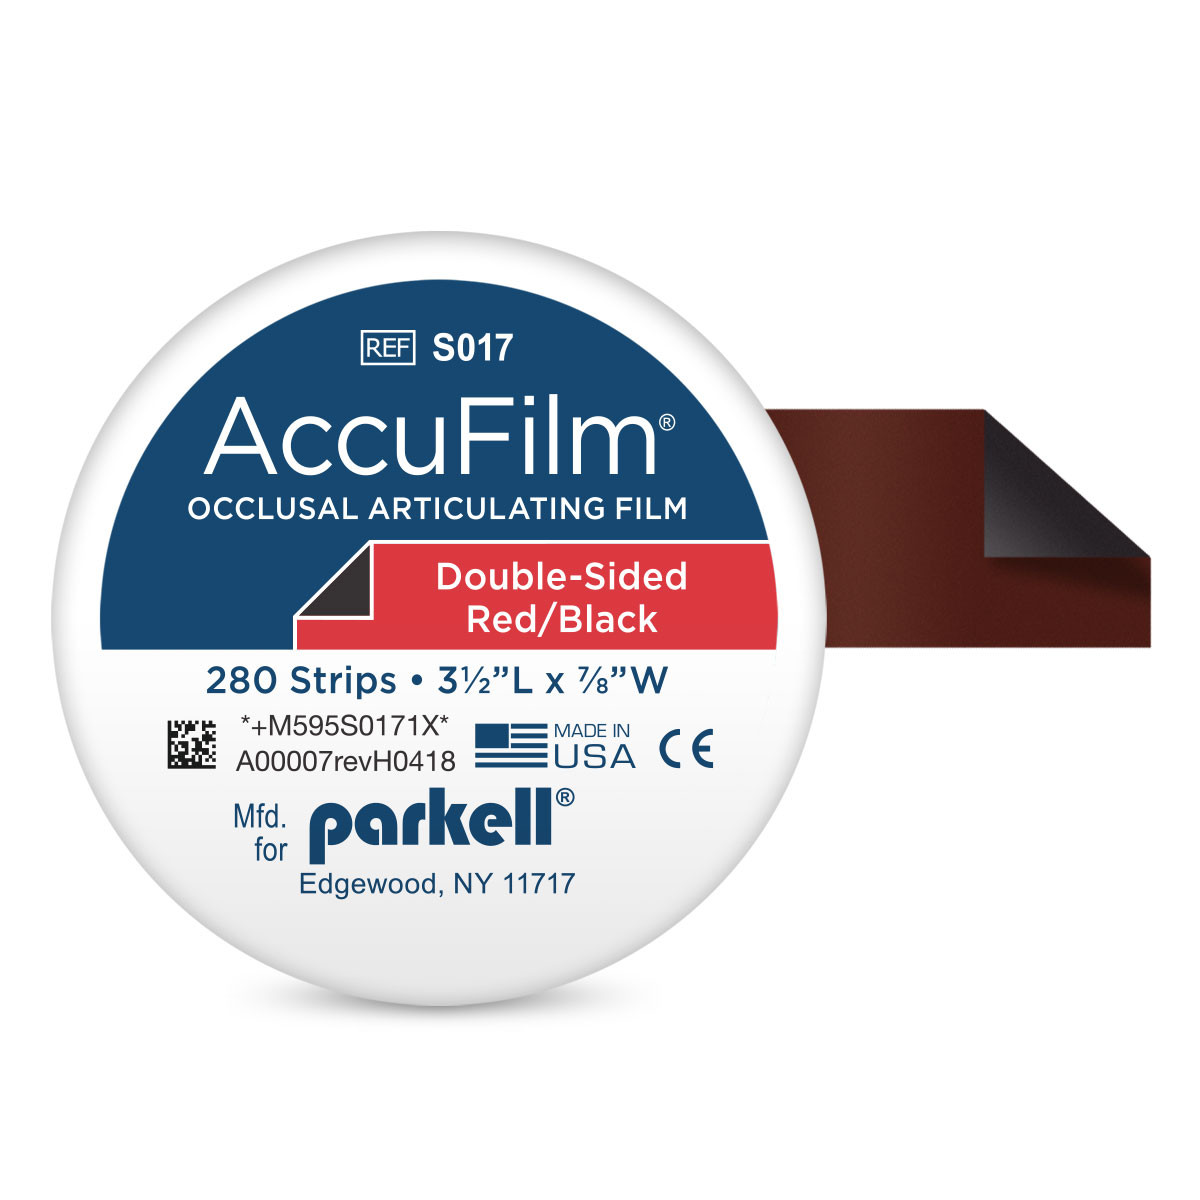 ACCUFILM II DOUBLE SIDED ARTICULATING FILM